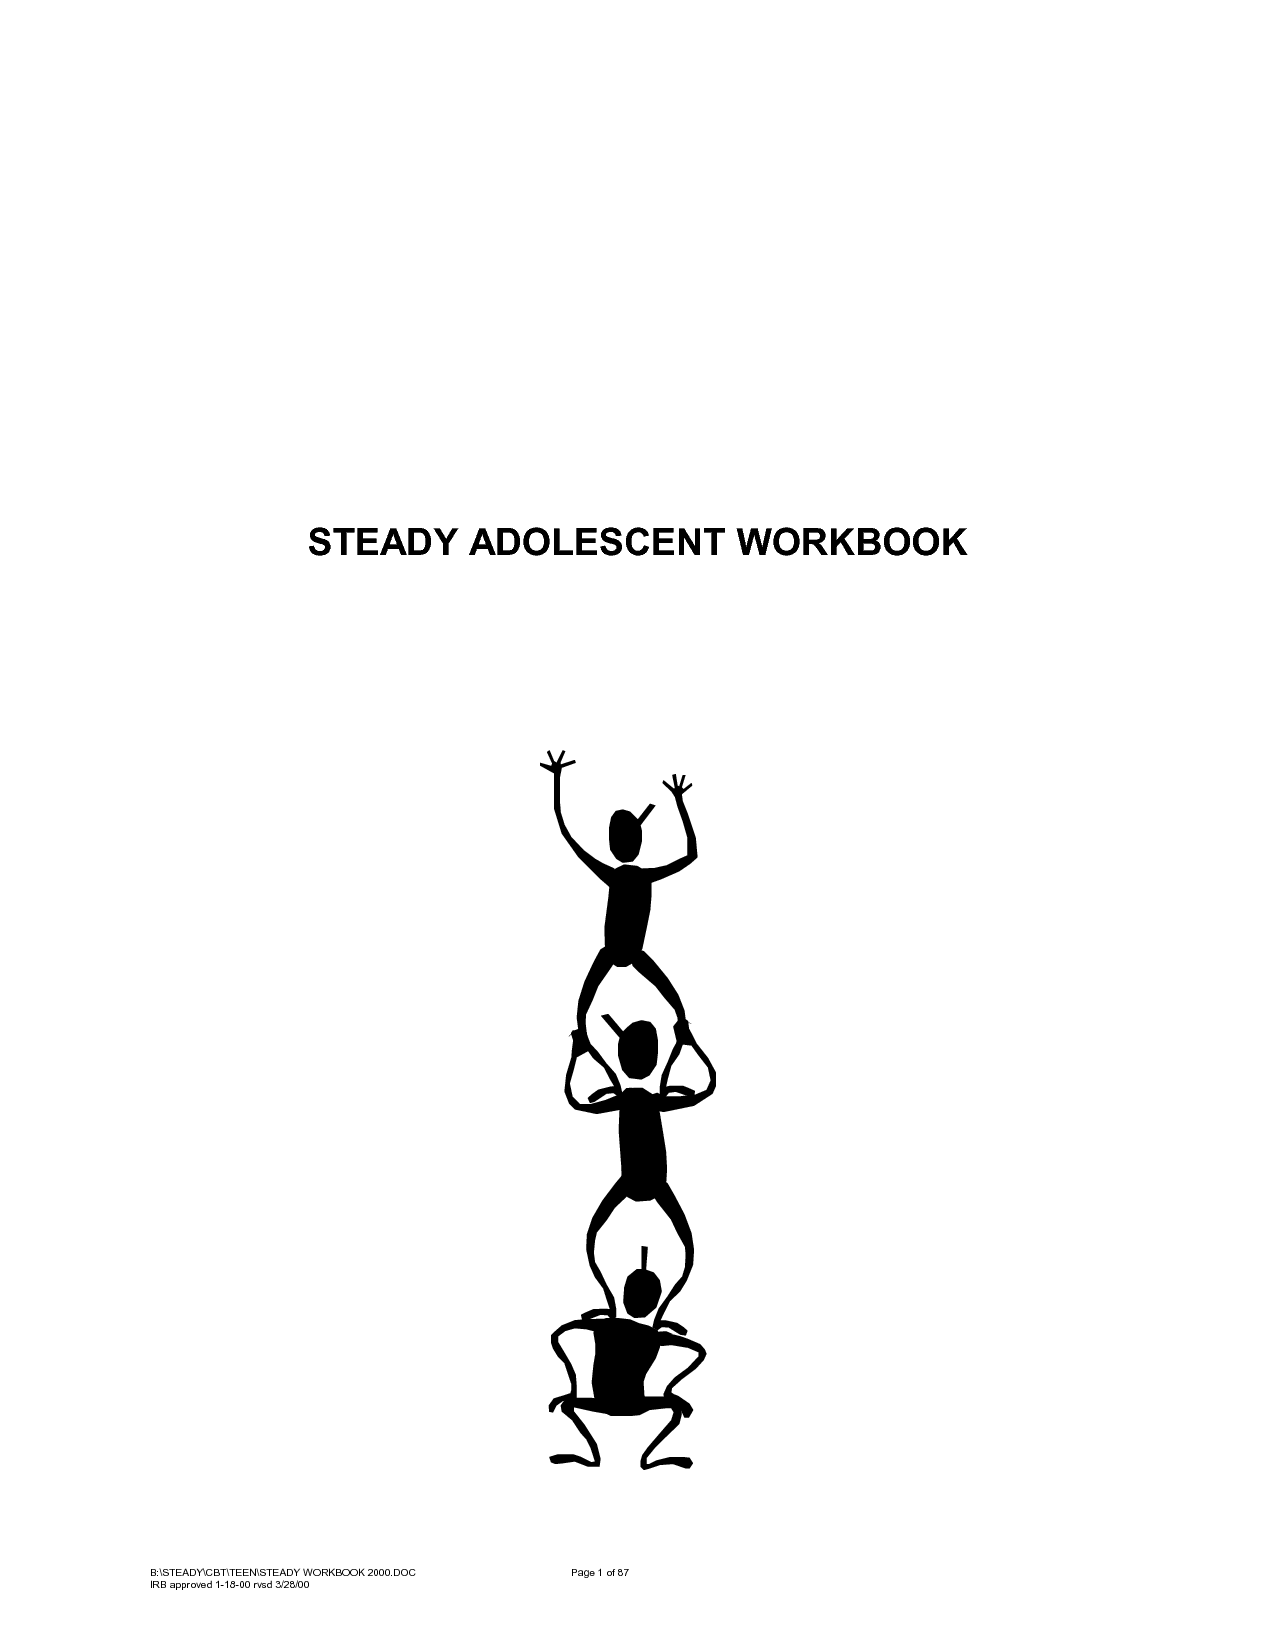 Adolescent Workbook Daily Mood And Activity Diary